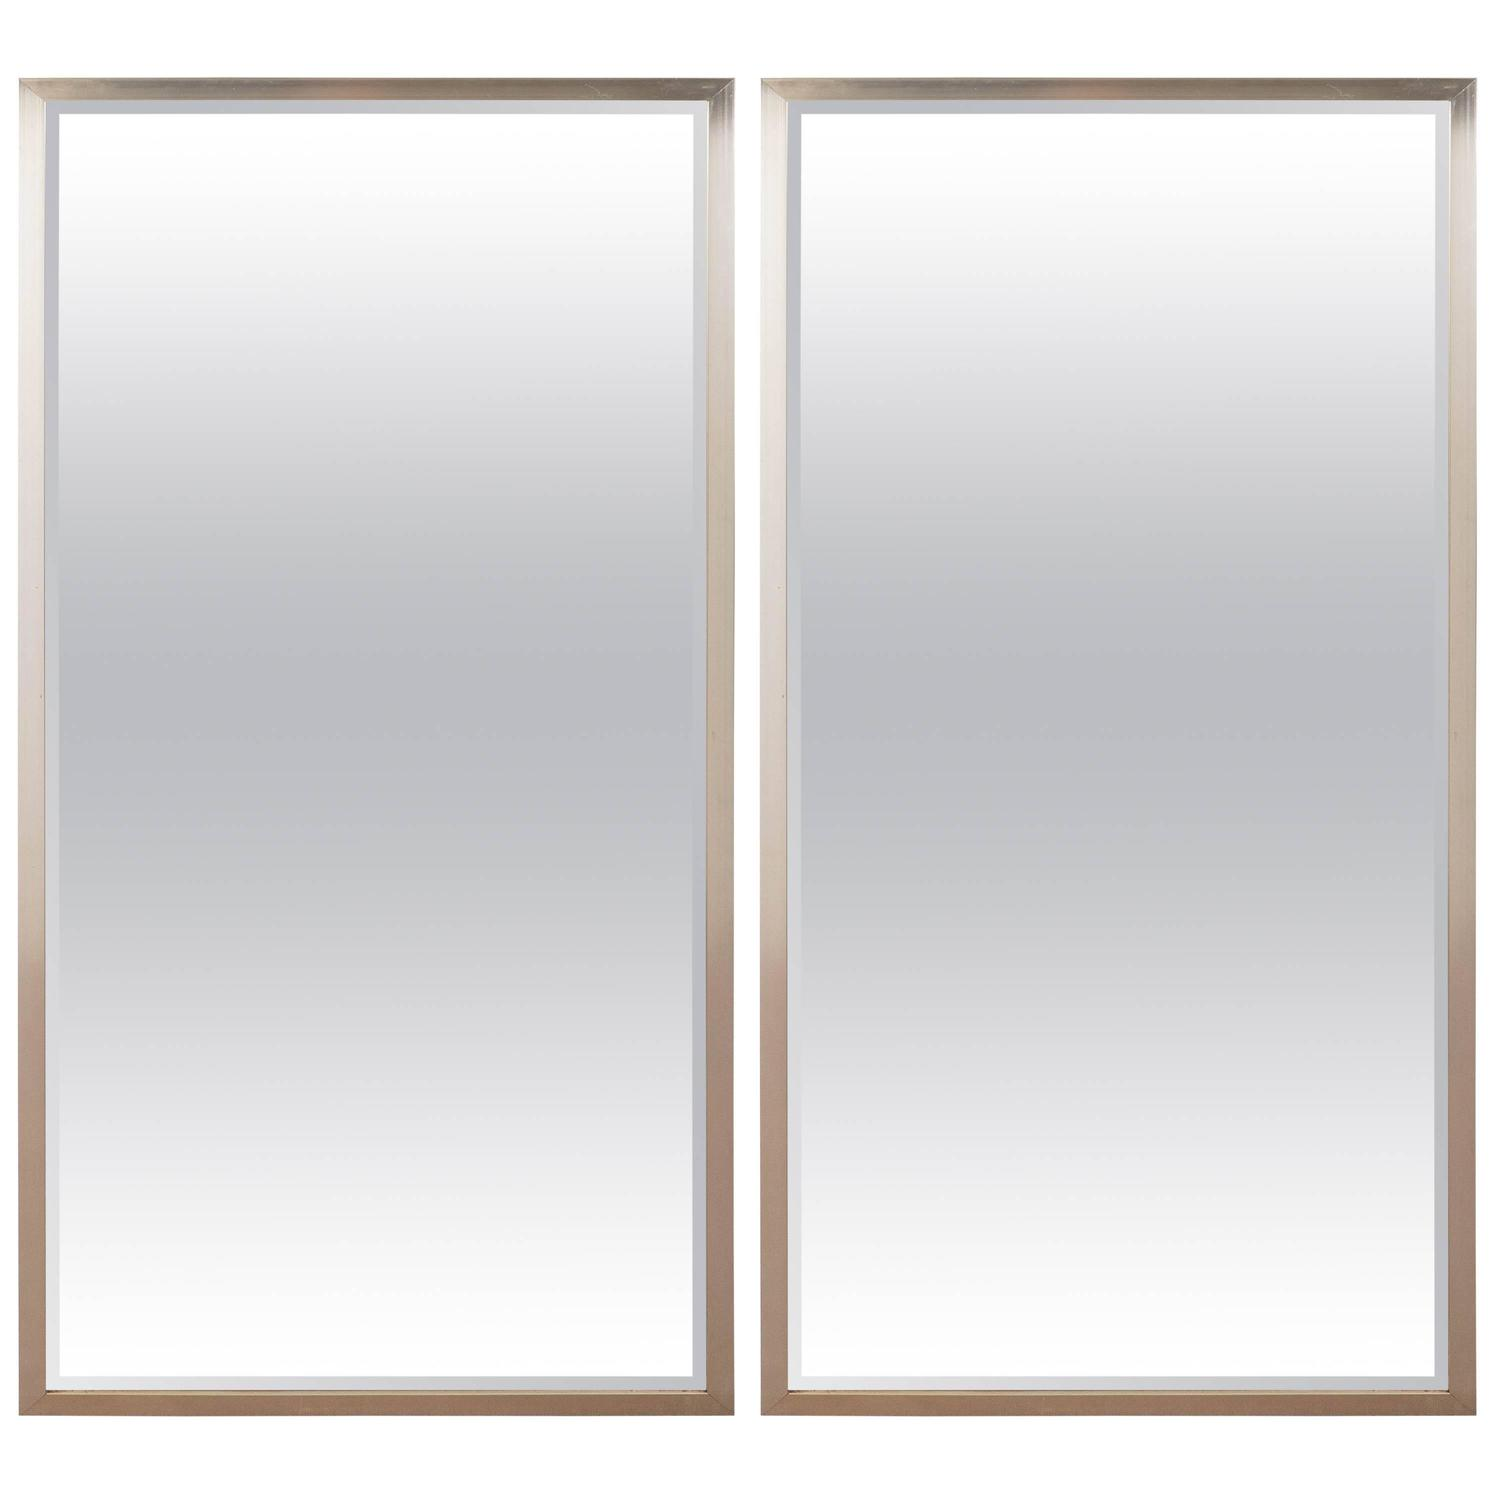 Pair of mid century steel framed beveled wall mirrors at for Beveled wall mirror